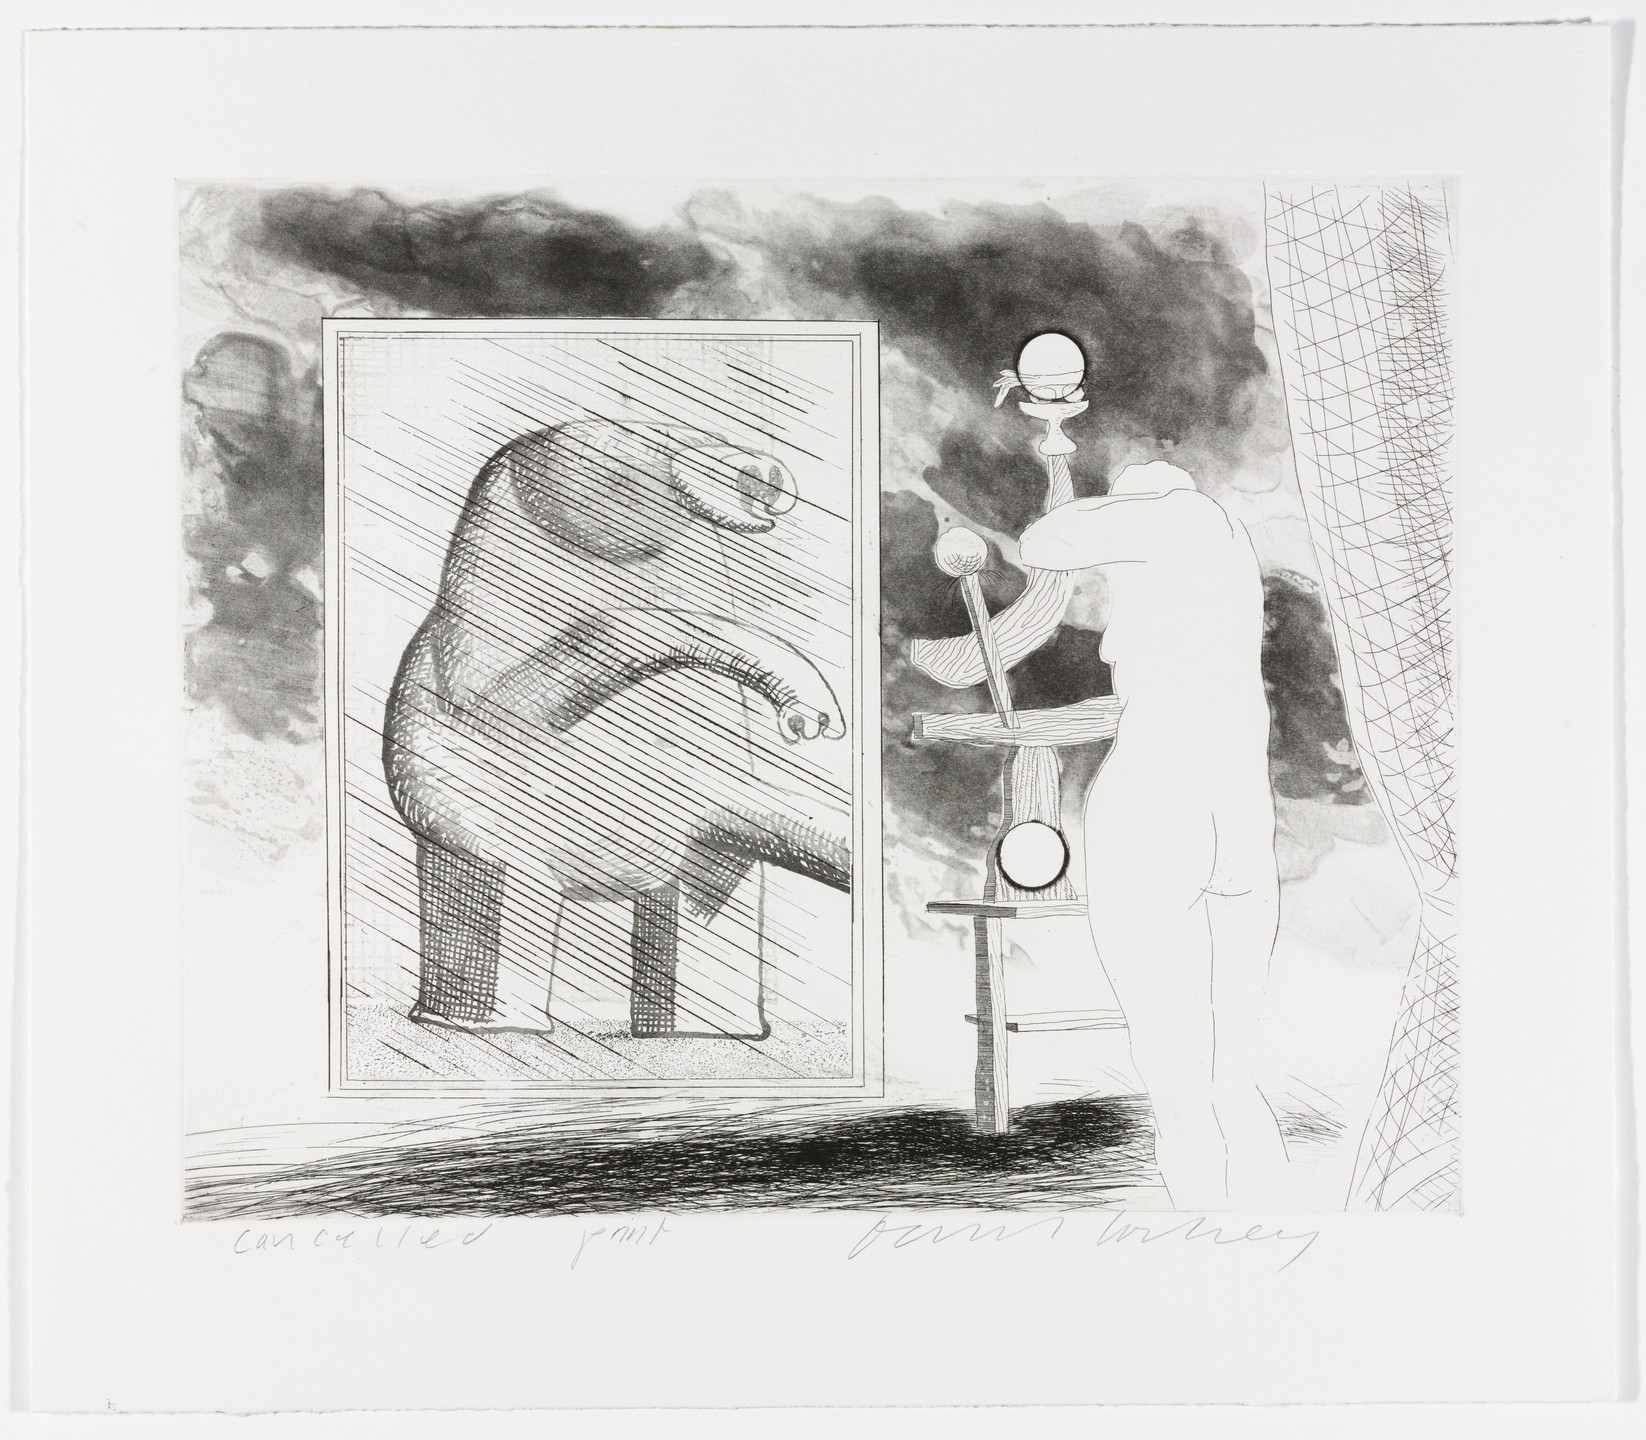 David Hockney. Cancellation proof for A Picture of Ourselves from The Blue Guitar. 1977